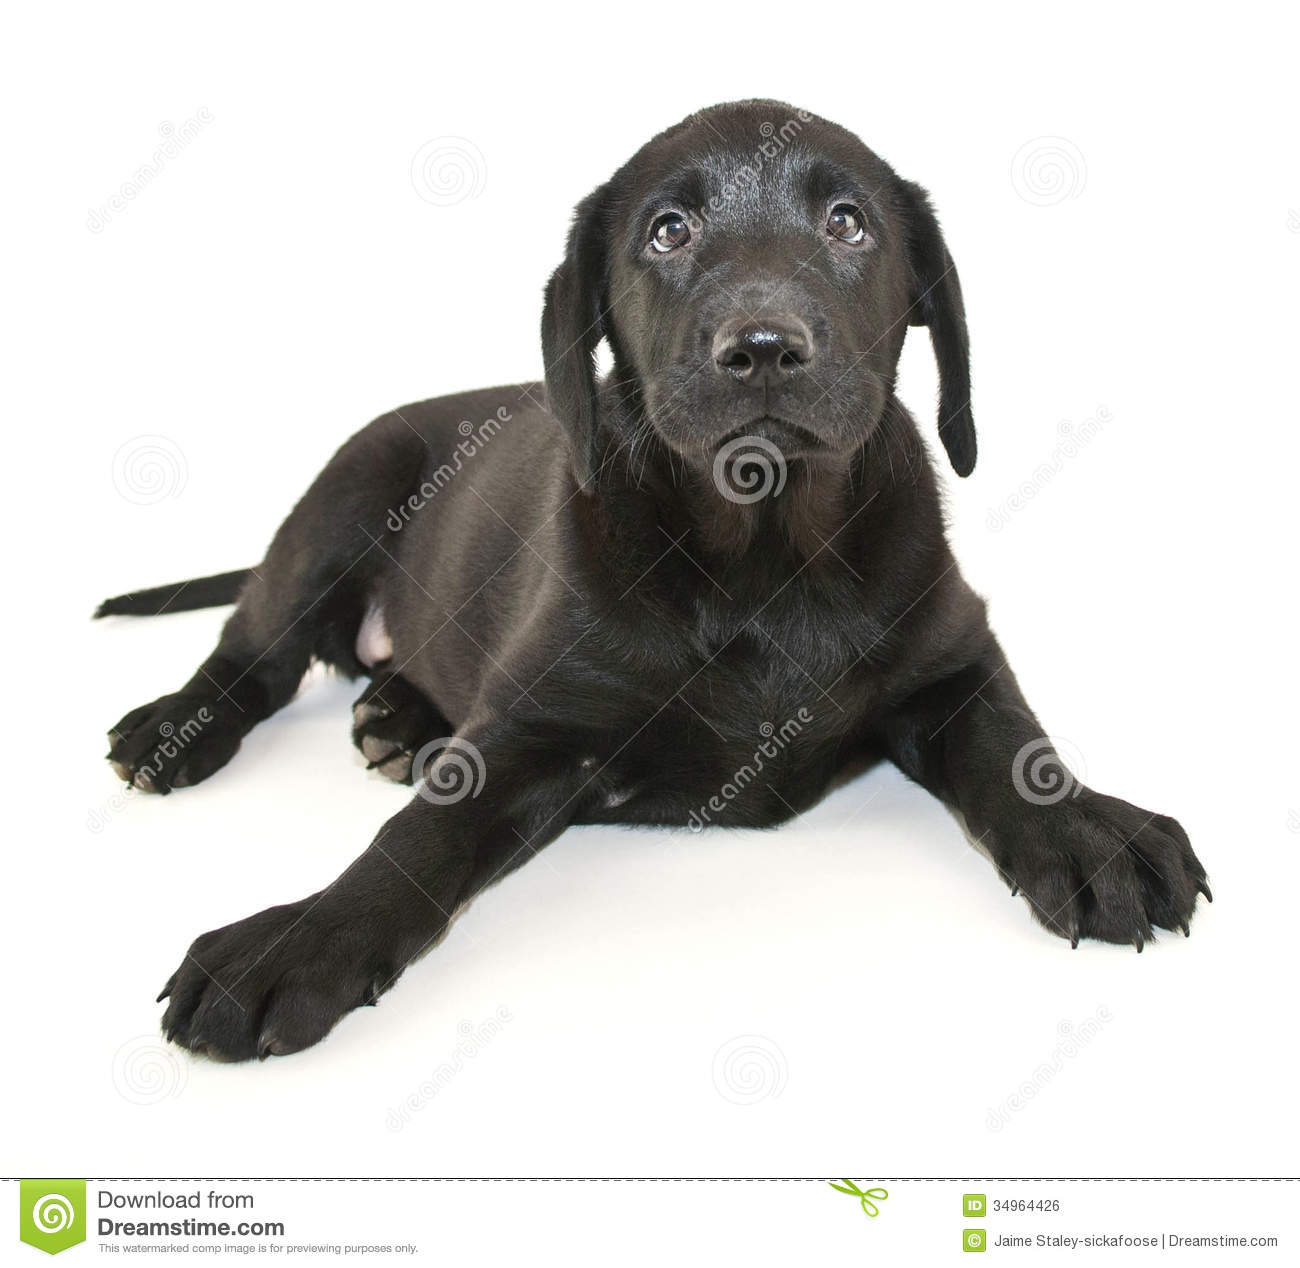 3 689 Black Lab Puppy Photos Free Royalty Free Stock Photos From Dreamstime